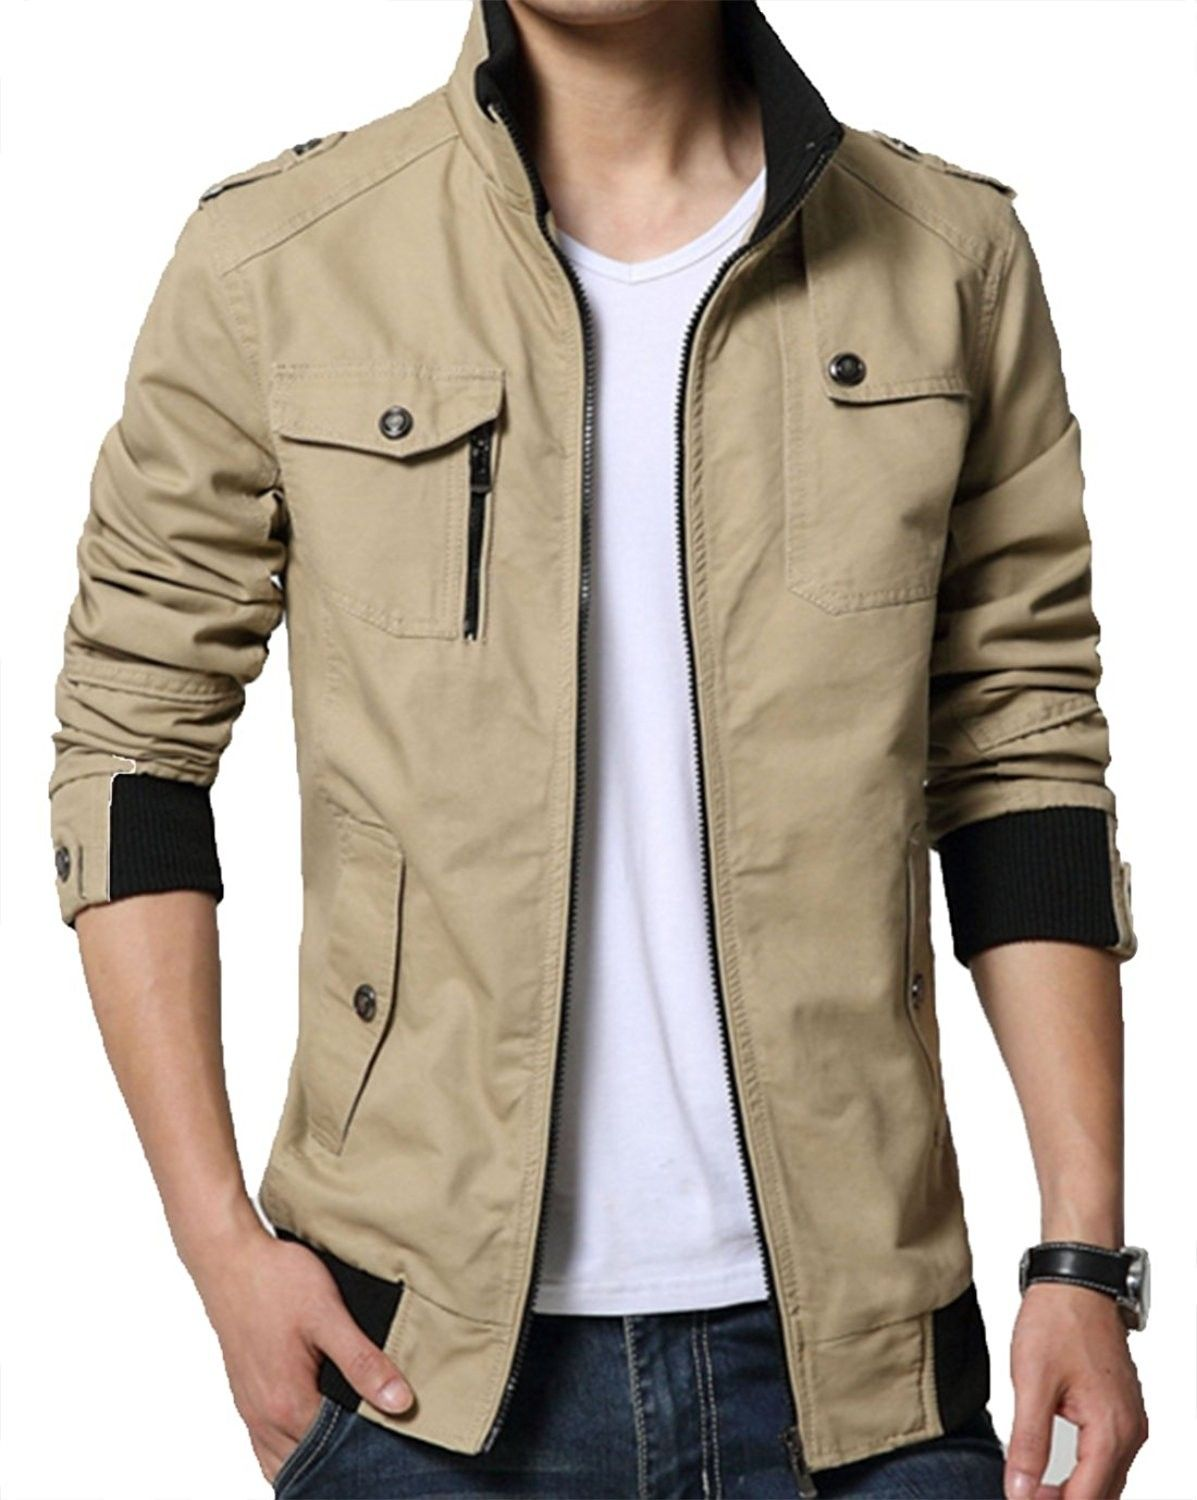 Men's Solid Cotton Casual Wear Stand Collar Jacket - Khaki - C212N2620V7   Jackets  men fashion, Stand collar jackets, Hipster mens fashion